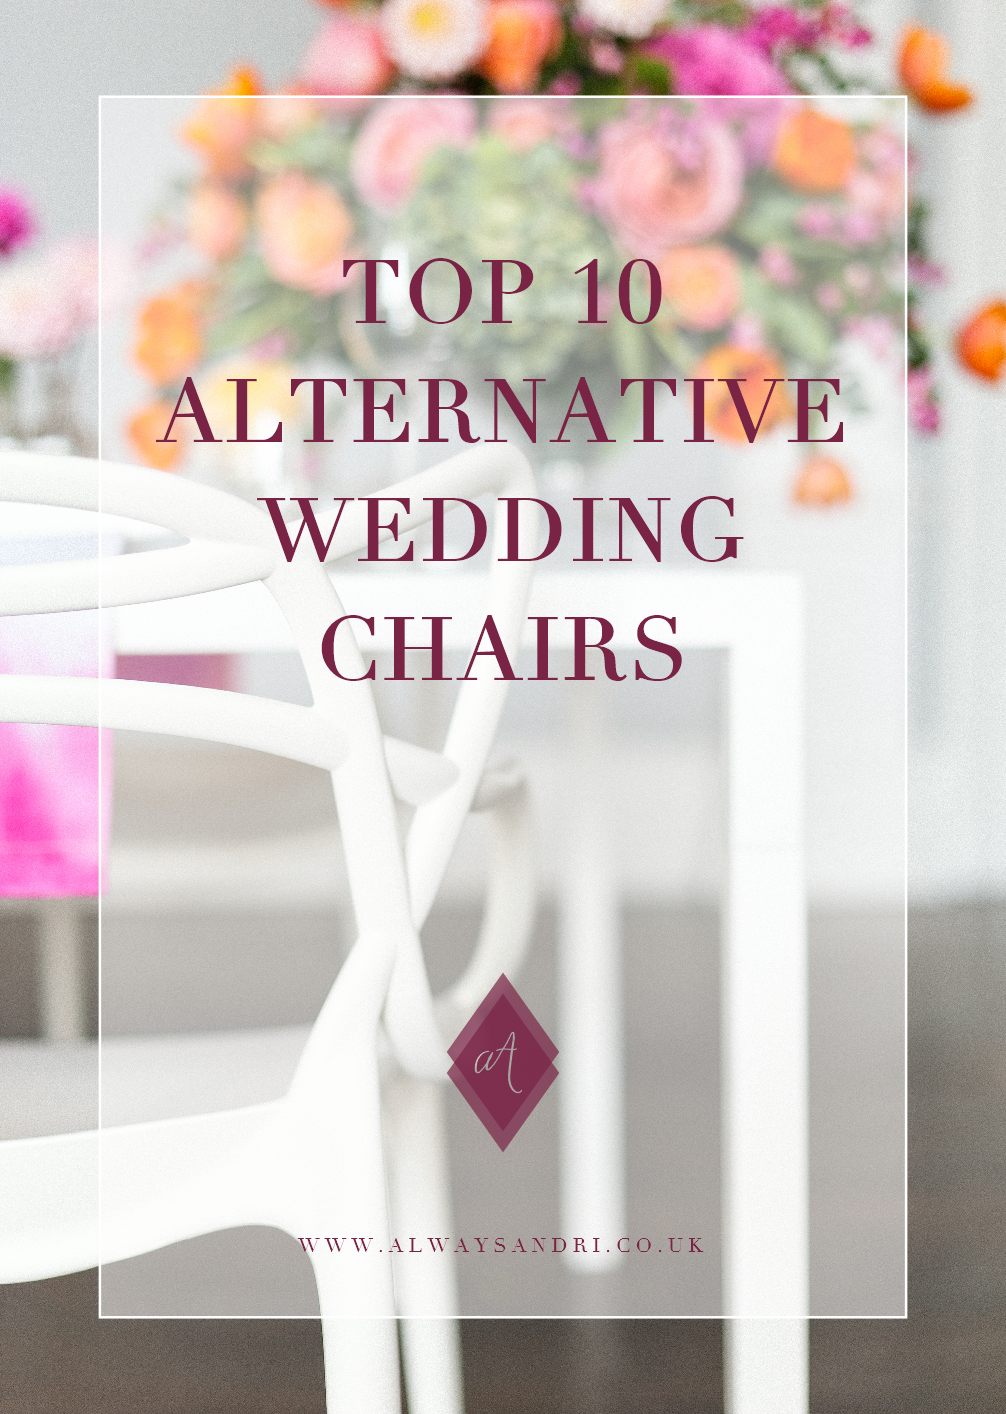 Top 10 alternative wedding chairs that will transform your wedding décor